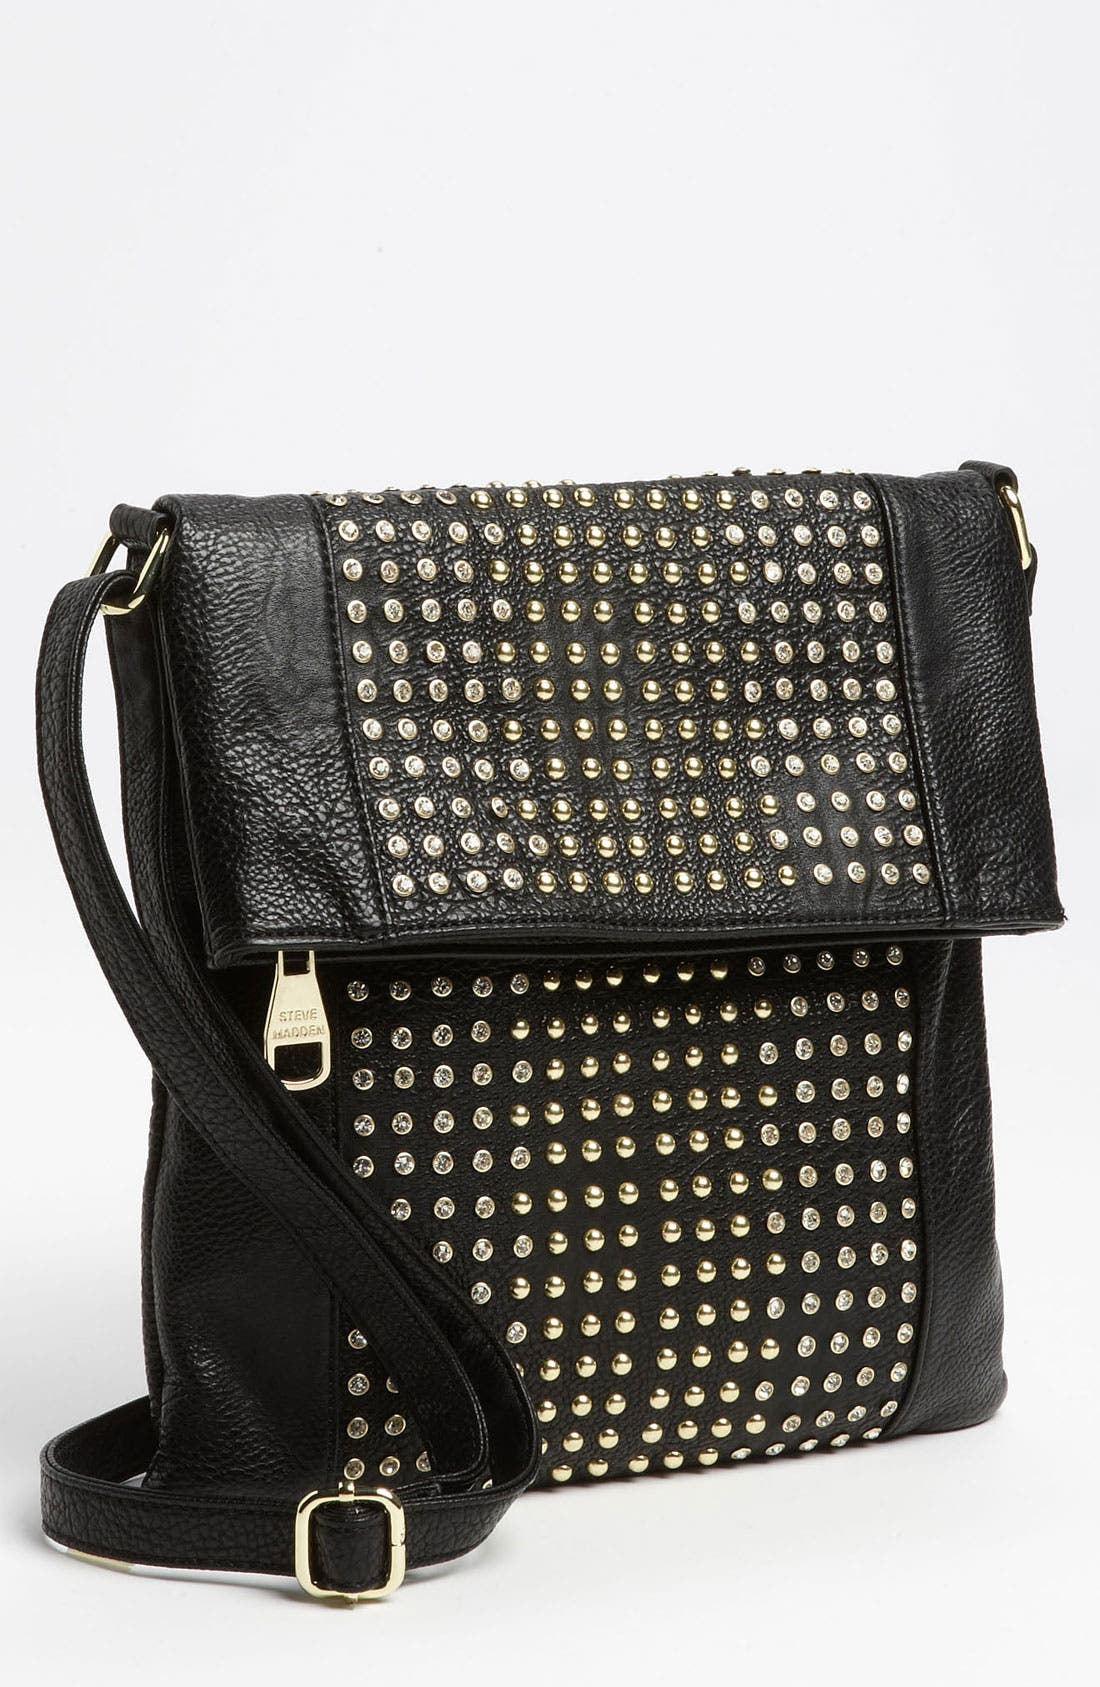 Main Image - Steve Madden 'Stud Love' Foldover Crossbody Bag